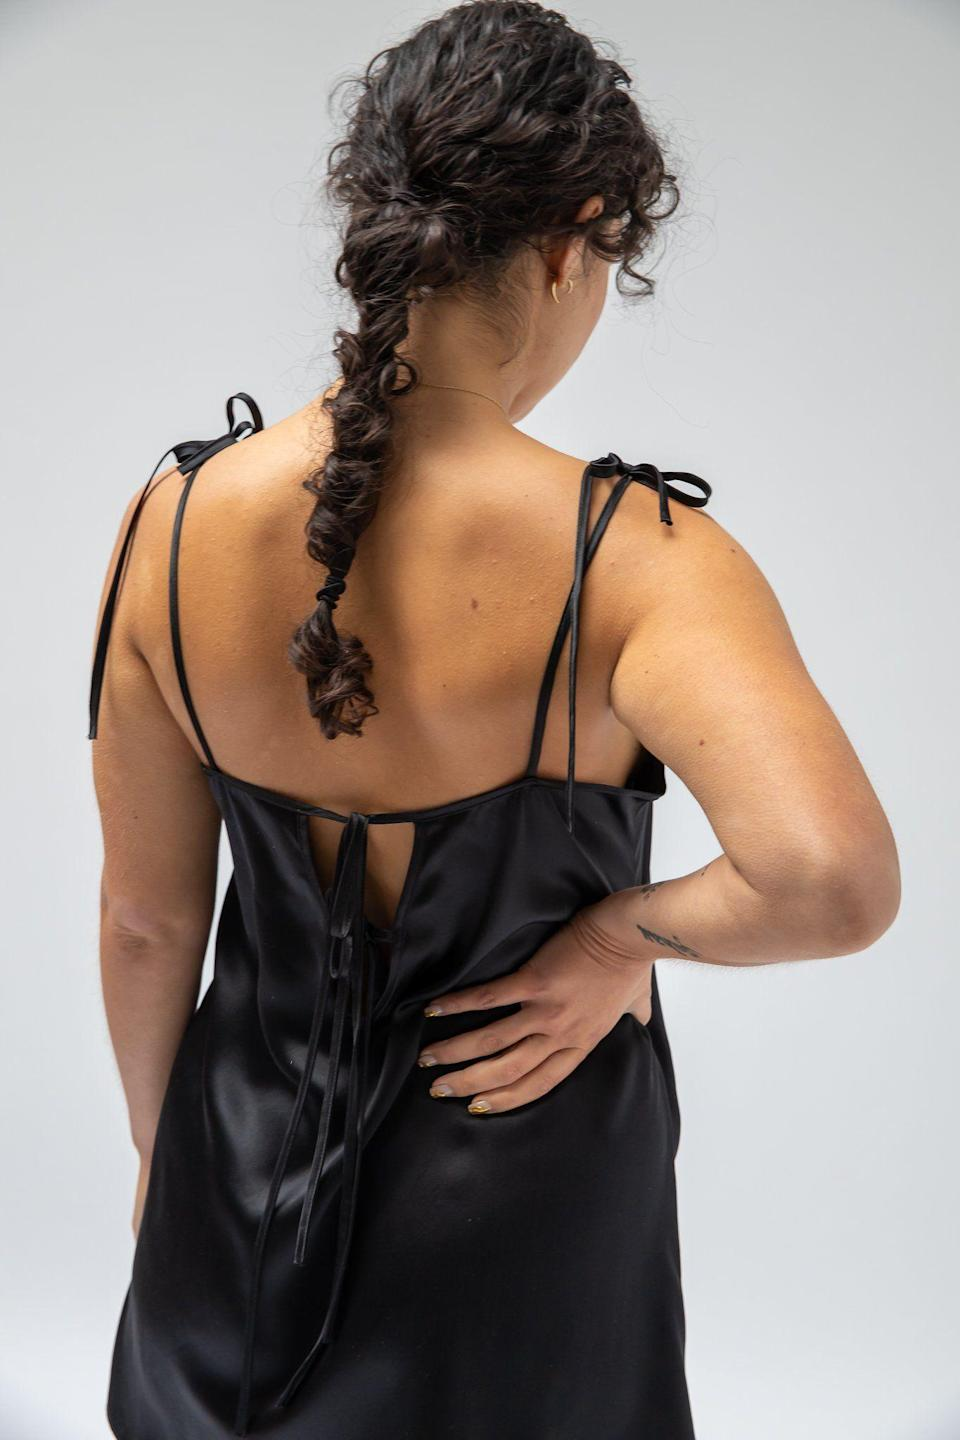 """<p><strong>La Sette</strong></p><p>lasette.shop</p><p><strong>$185.00</strong></p><p><a href=""""https://www.lasette.shop/products/tied-up-chemise"""" rel=""""nofollow noopener"""" target=""""_blank"""" data-ylk=""""slk:Shop Now"""" class=""""link rapid-noclick-resp"""">Shop Now</a></p><p>A sexy silk chemise is <em>such</em> a pretty option if you prefer a sleep dress. Bring a lingerie feel to bed with this 100 percent silk chemise that ties at the shoulders and back. </p>"""